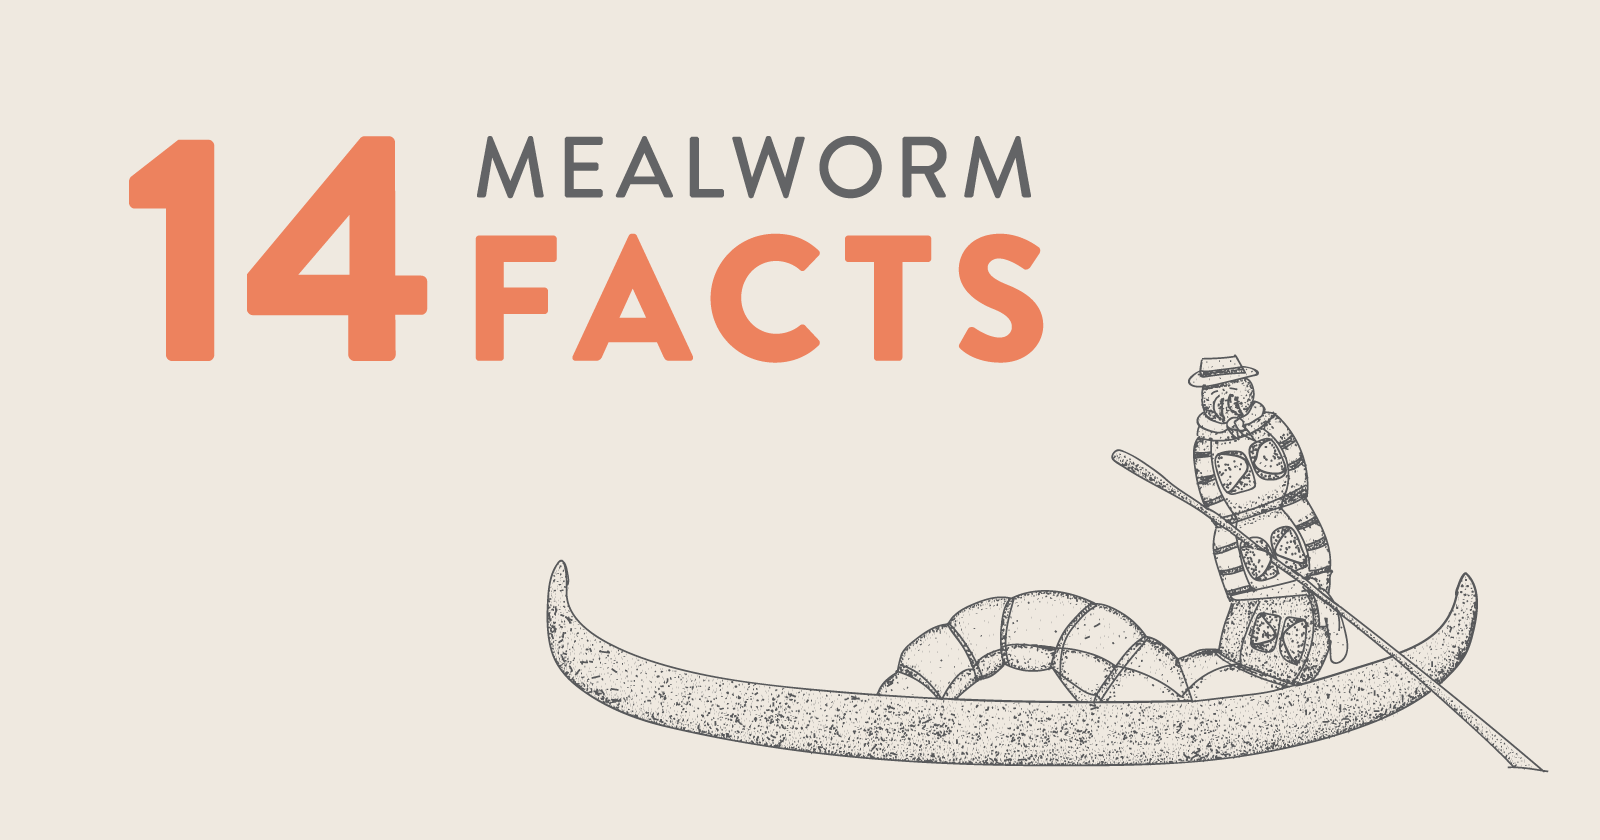 Mealworm on a boat - Illustration